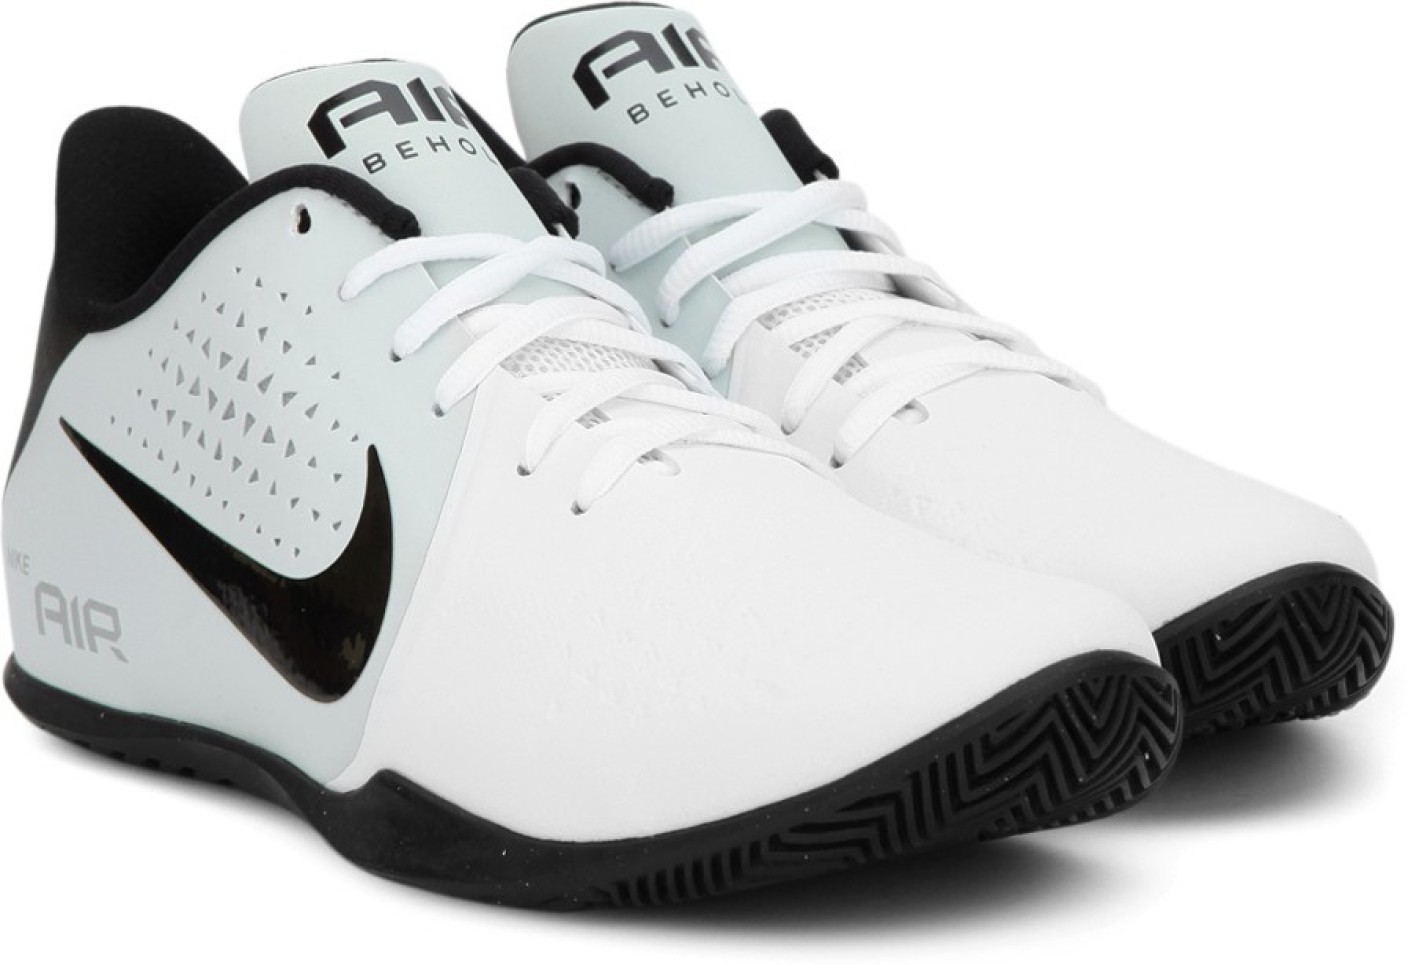 Nike AIR BEHOLD LOW Basketball Shoes. Share